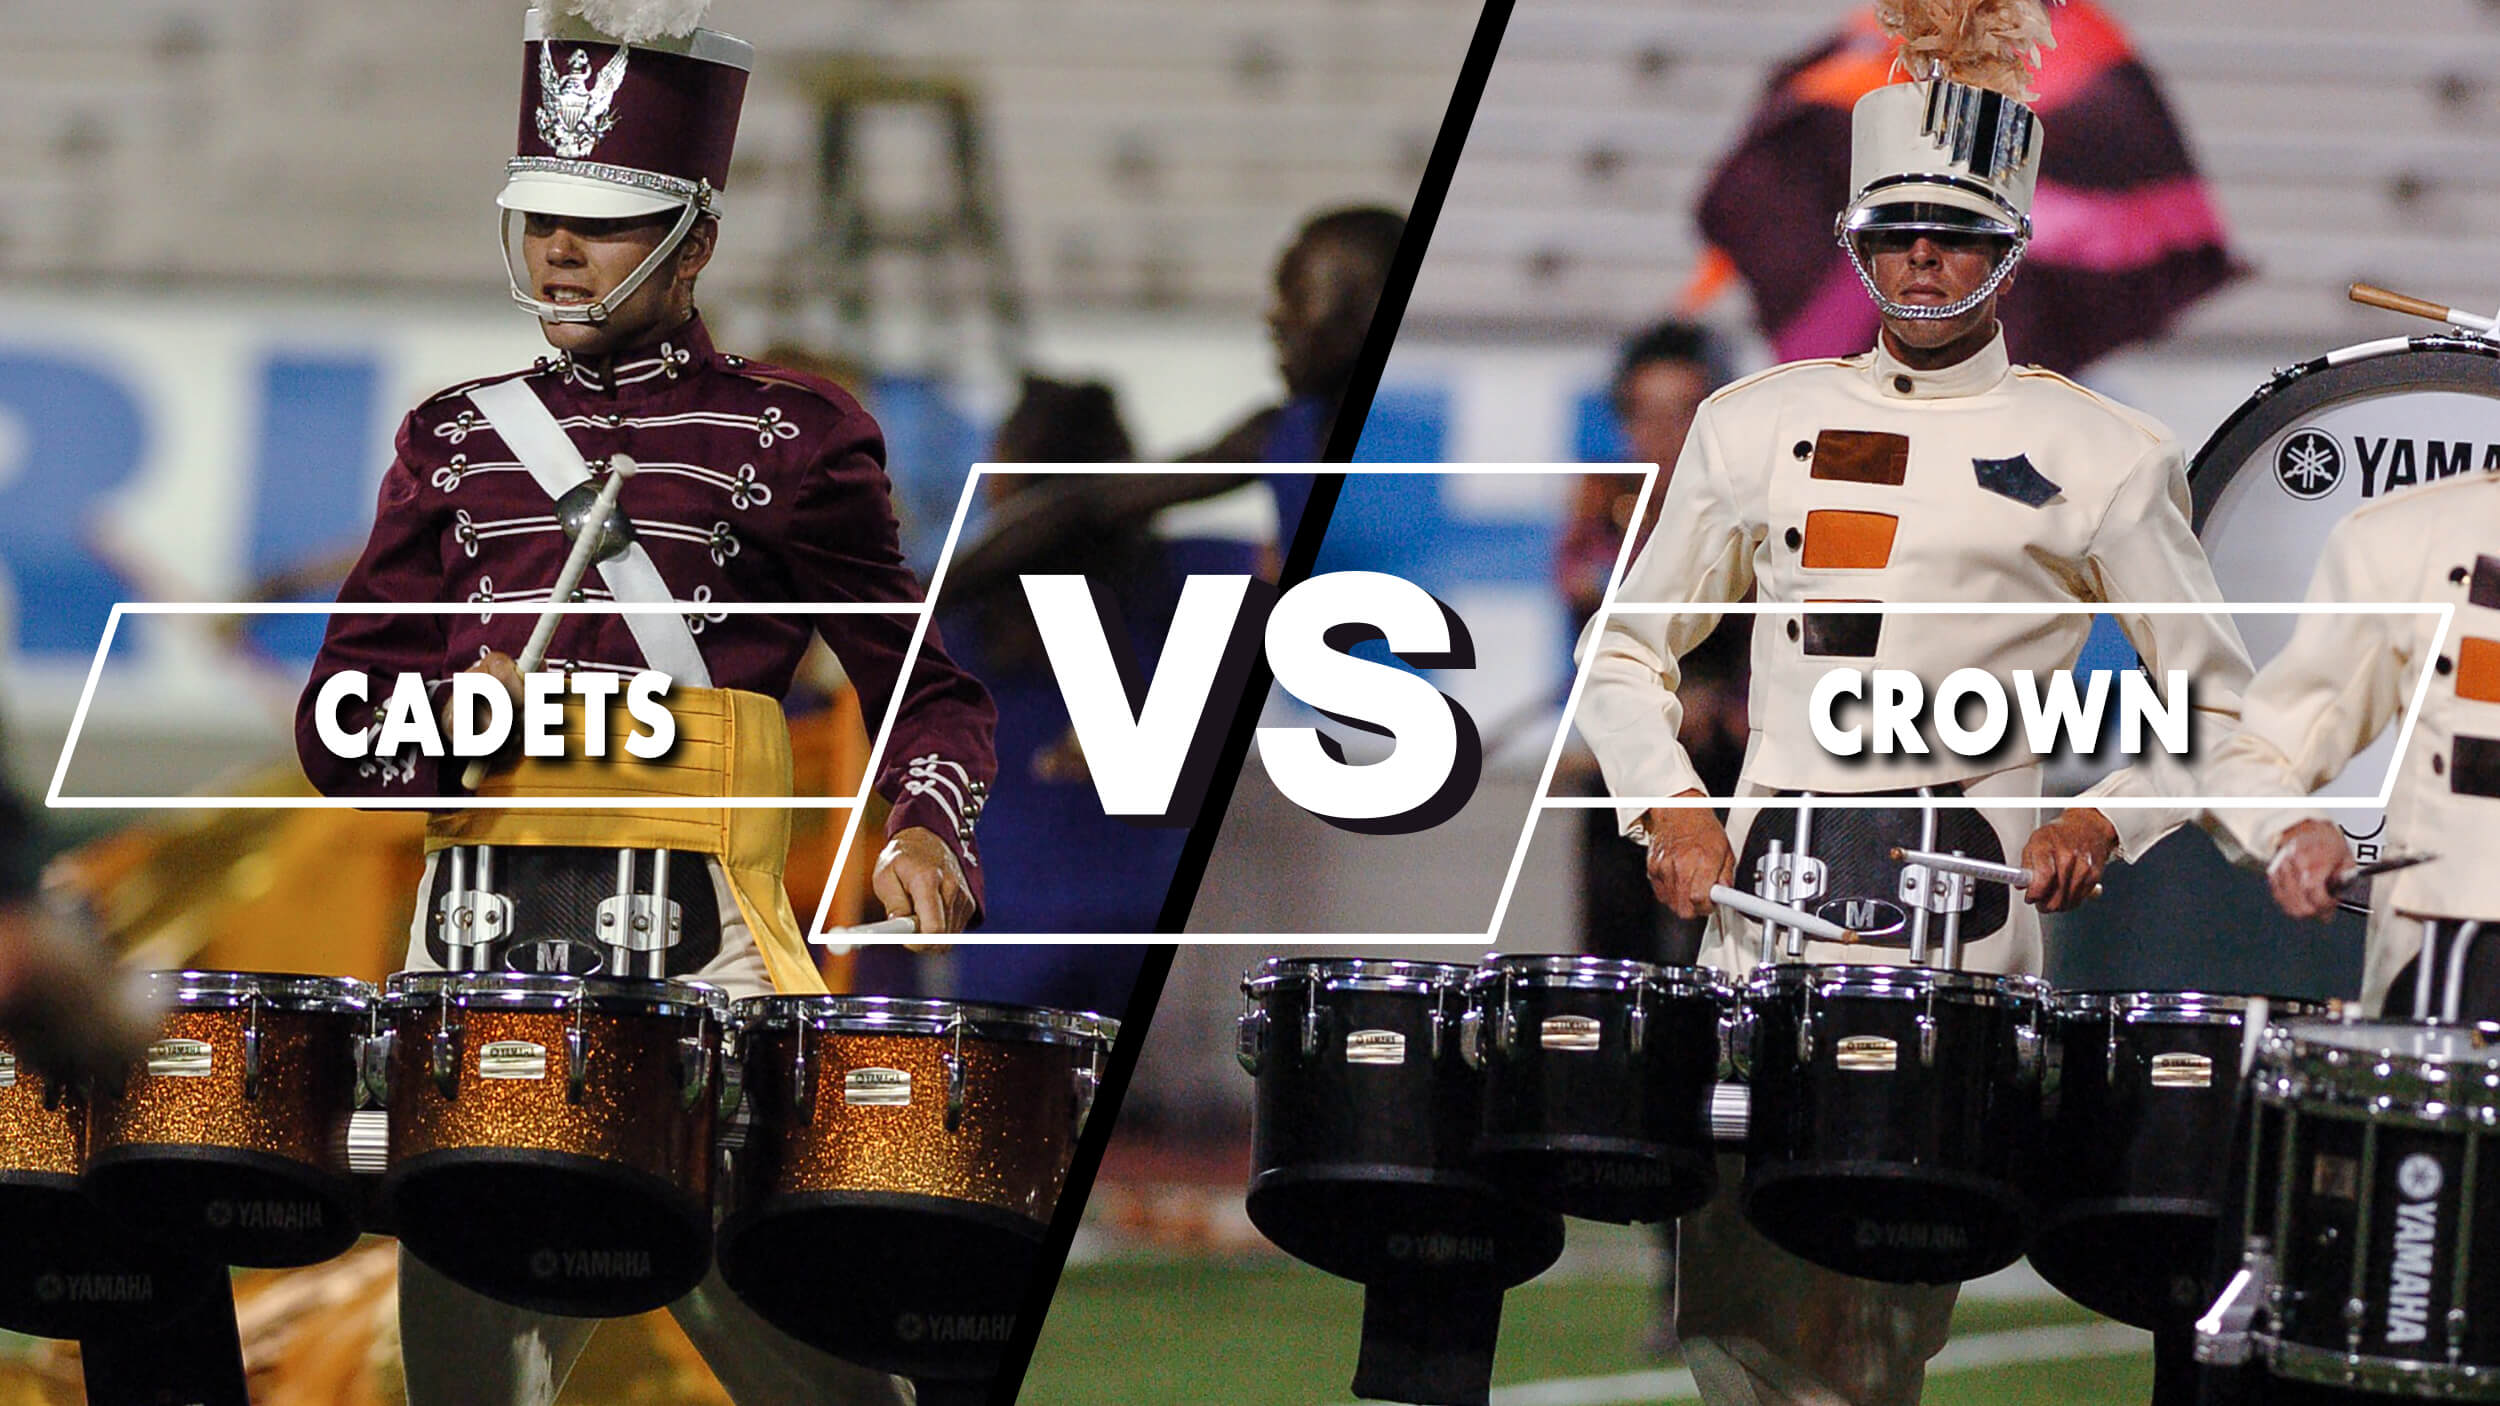 Cadets vs. Carolina Crown